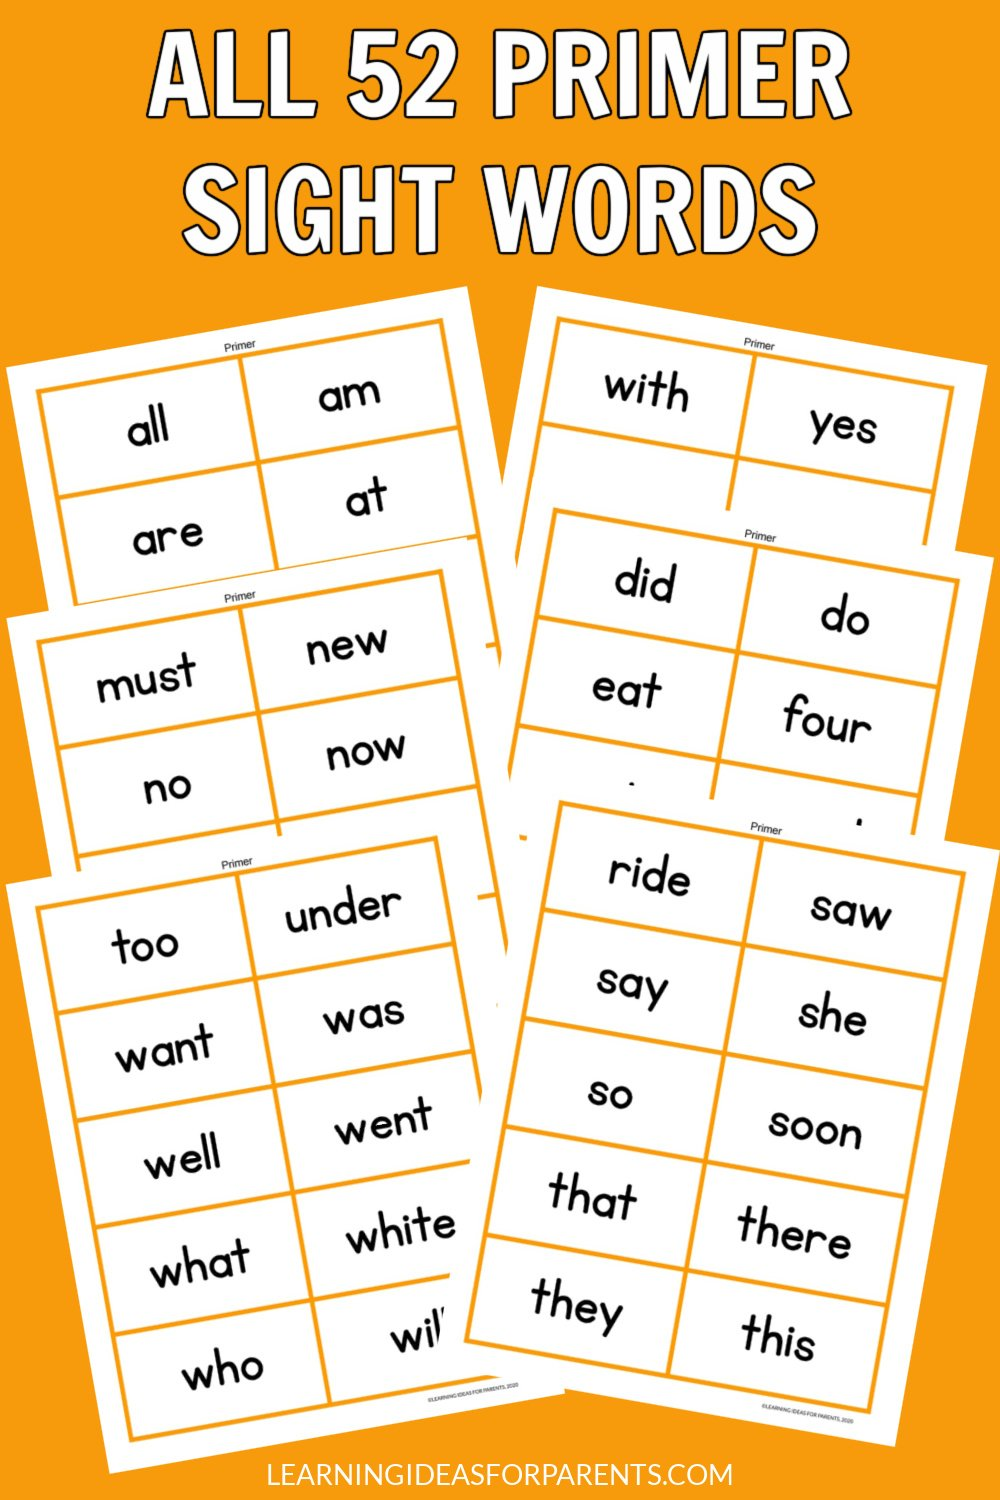 Free printable sight words flash cards for all 52 Dolch primer words.